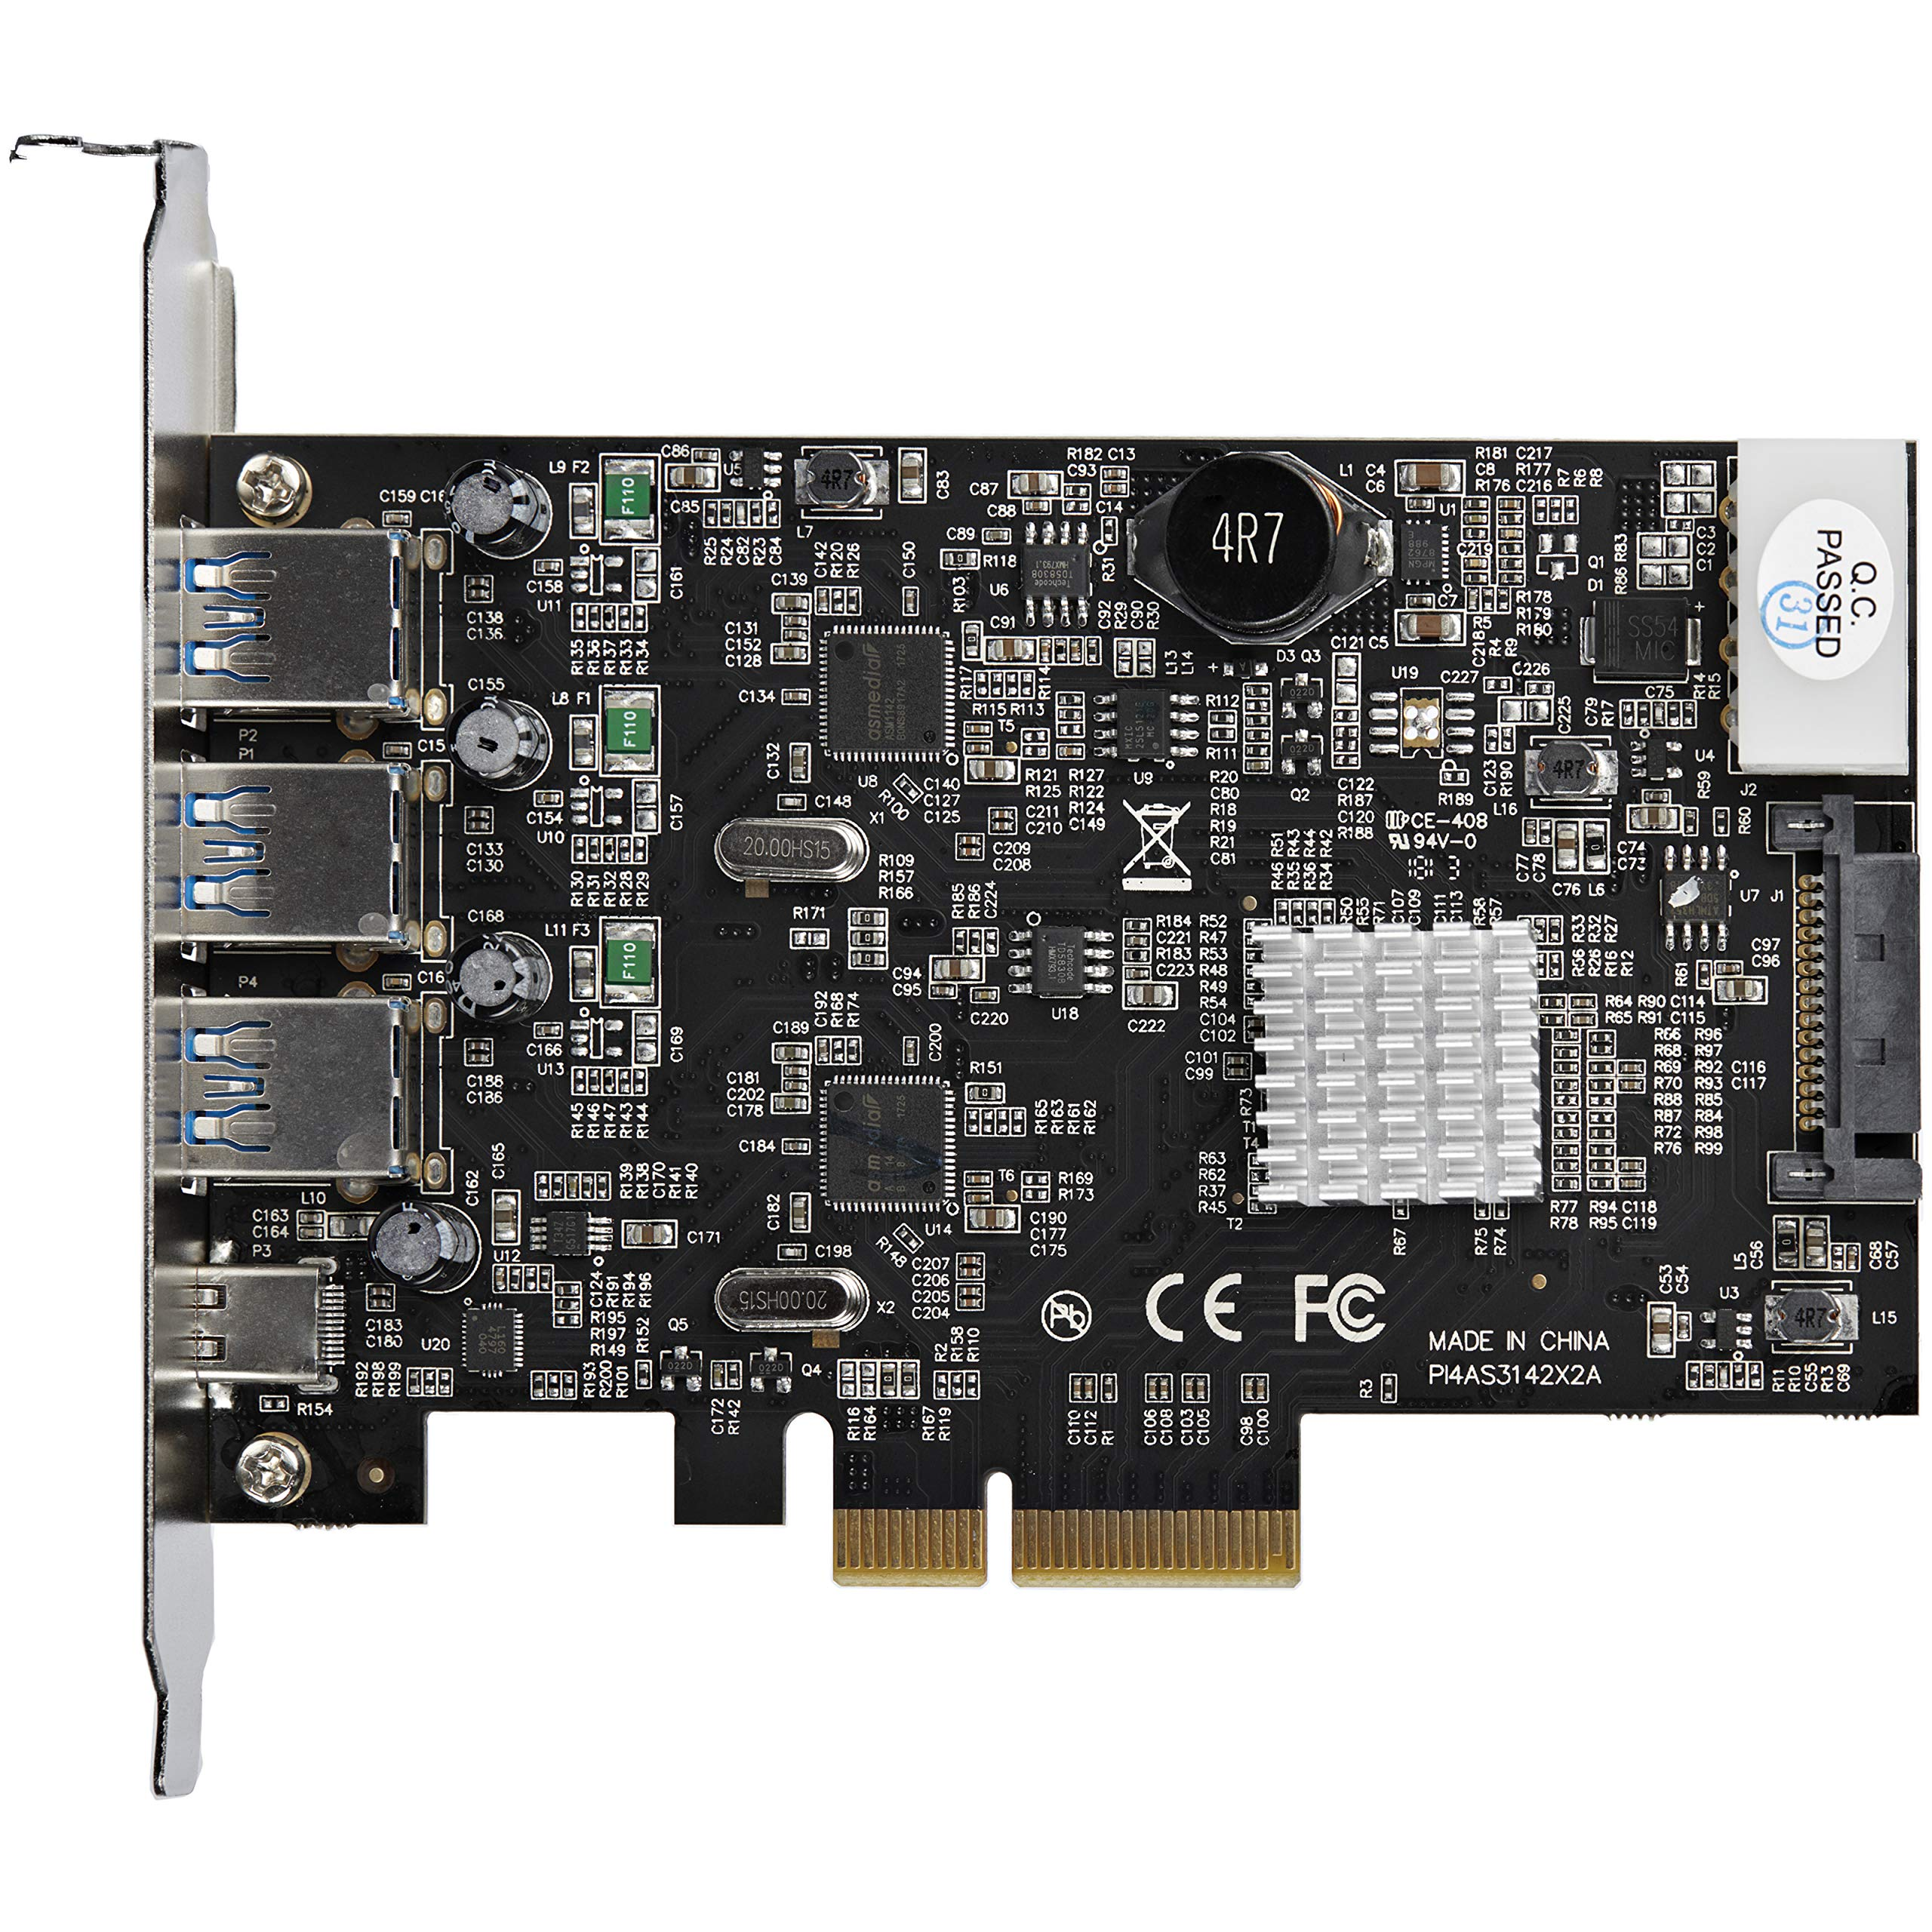 StarTech.com USB 3.1 PCIe Card - 3X USB-A and 1x USB-C - 2X Dedicated Channels - USB C PCIe Card - USB 3.1 Controller Card by StarTech (Image #4)